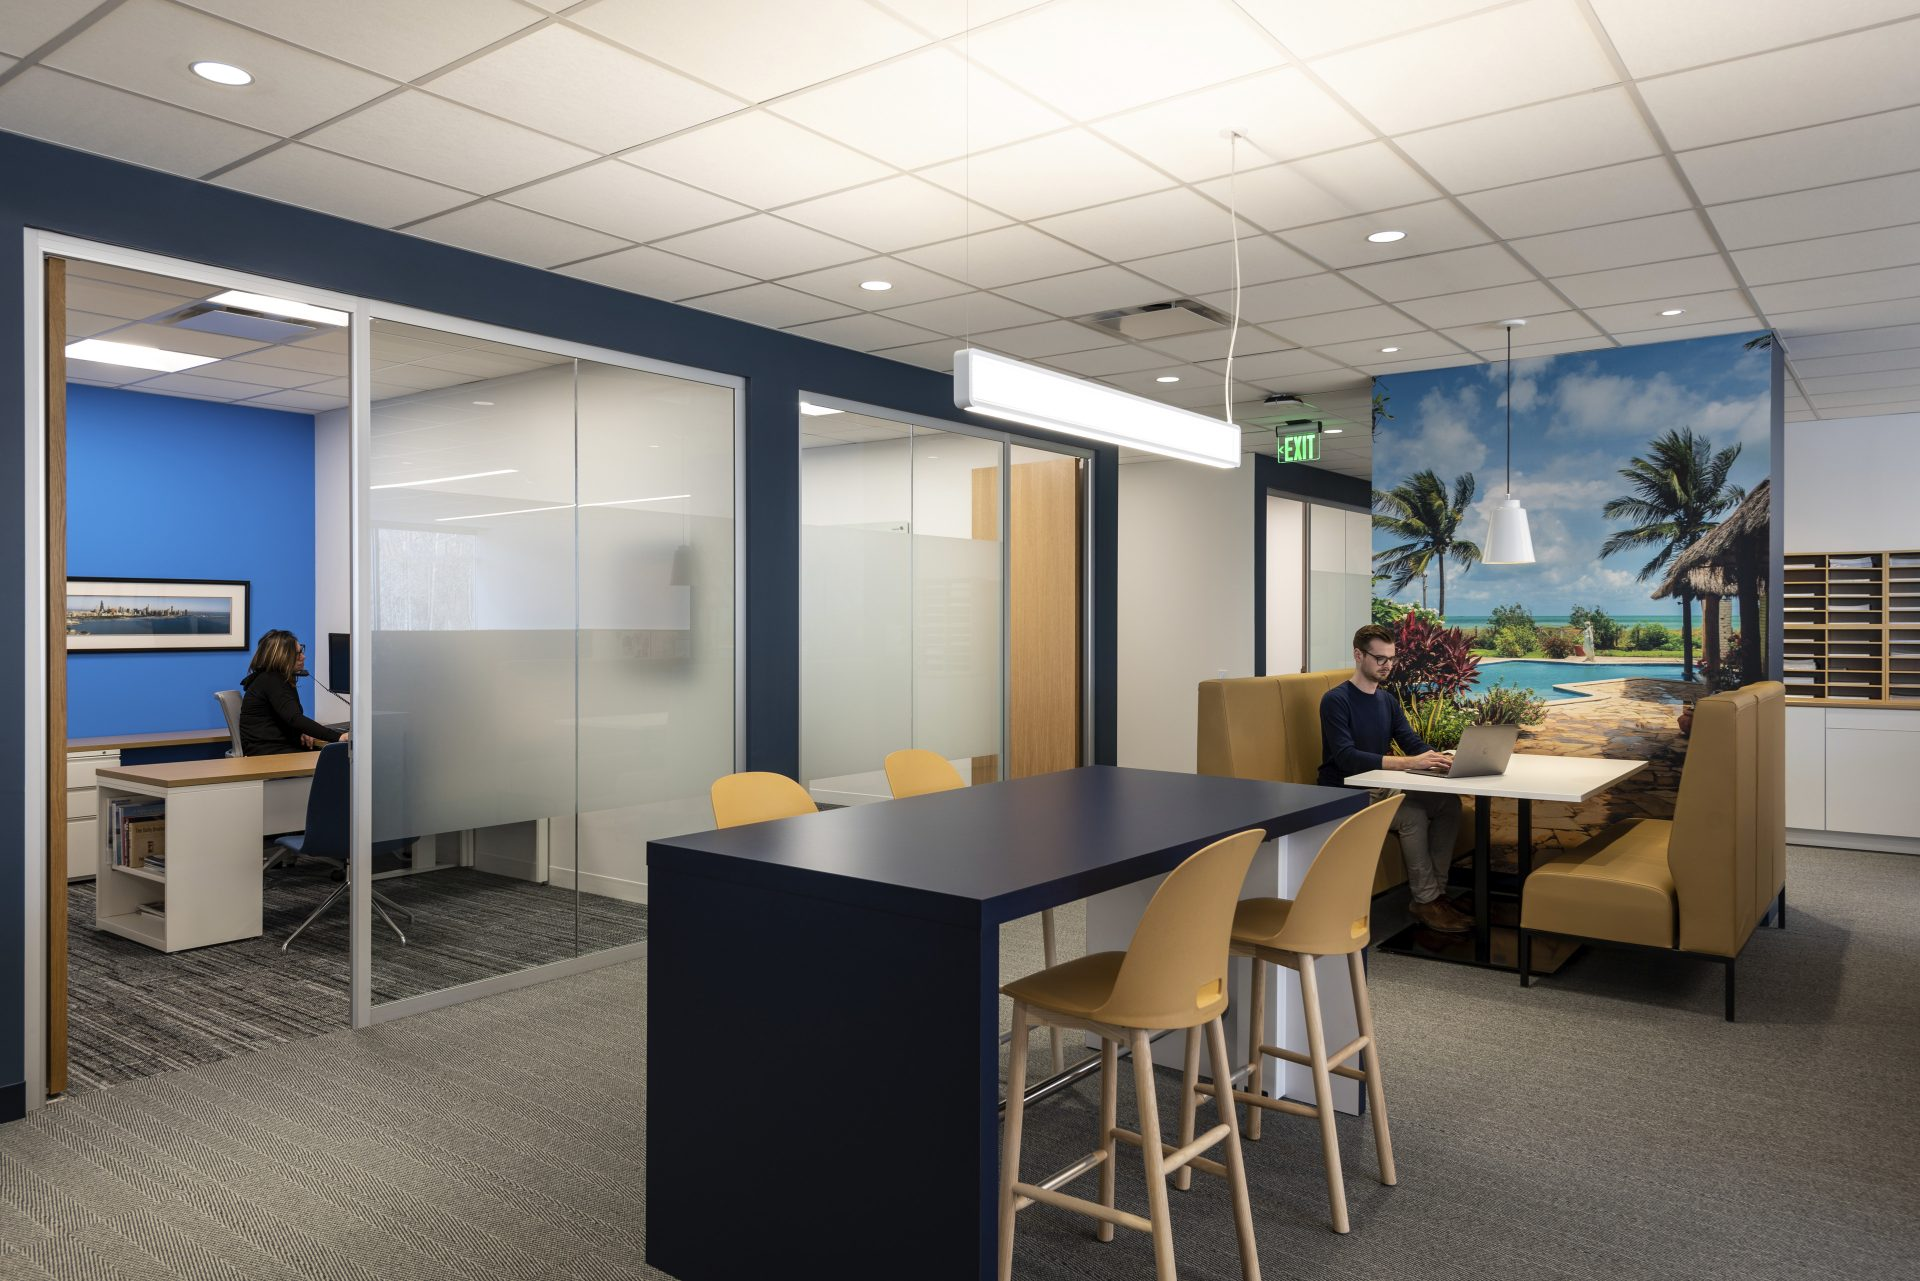 Variety of work settings from private offices to open collaboration at the new Hayward Industries Headquarters